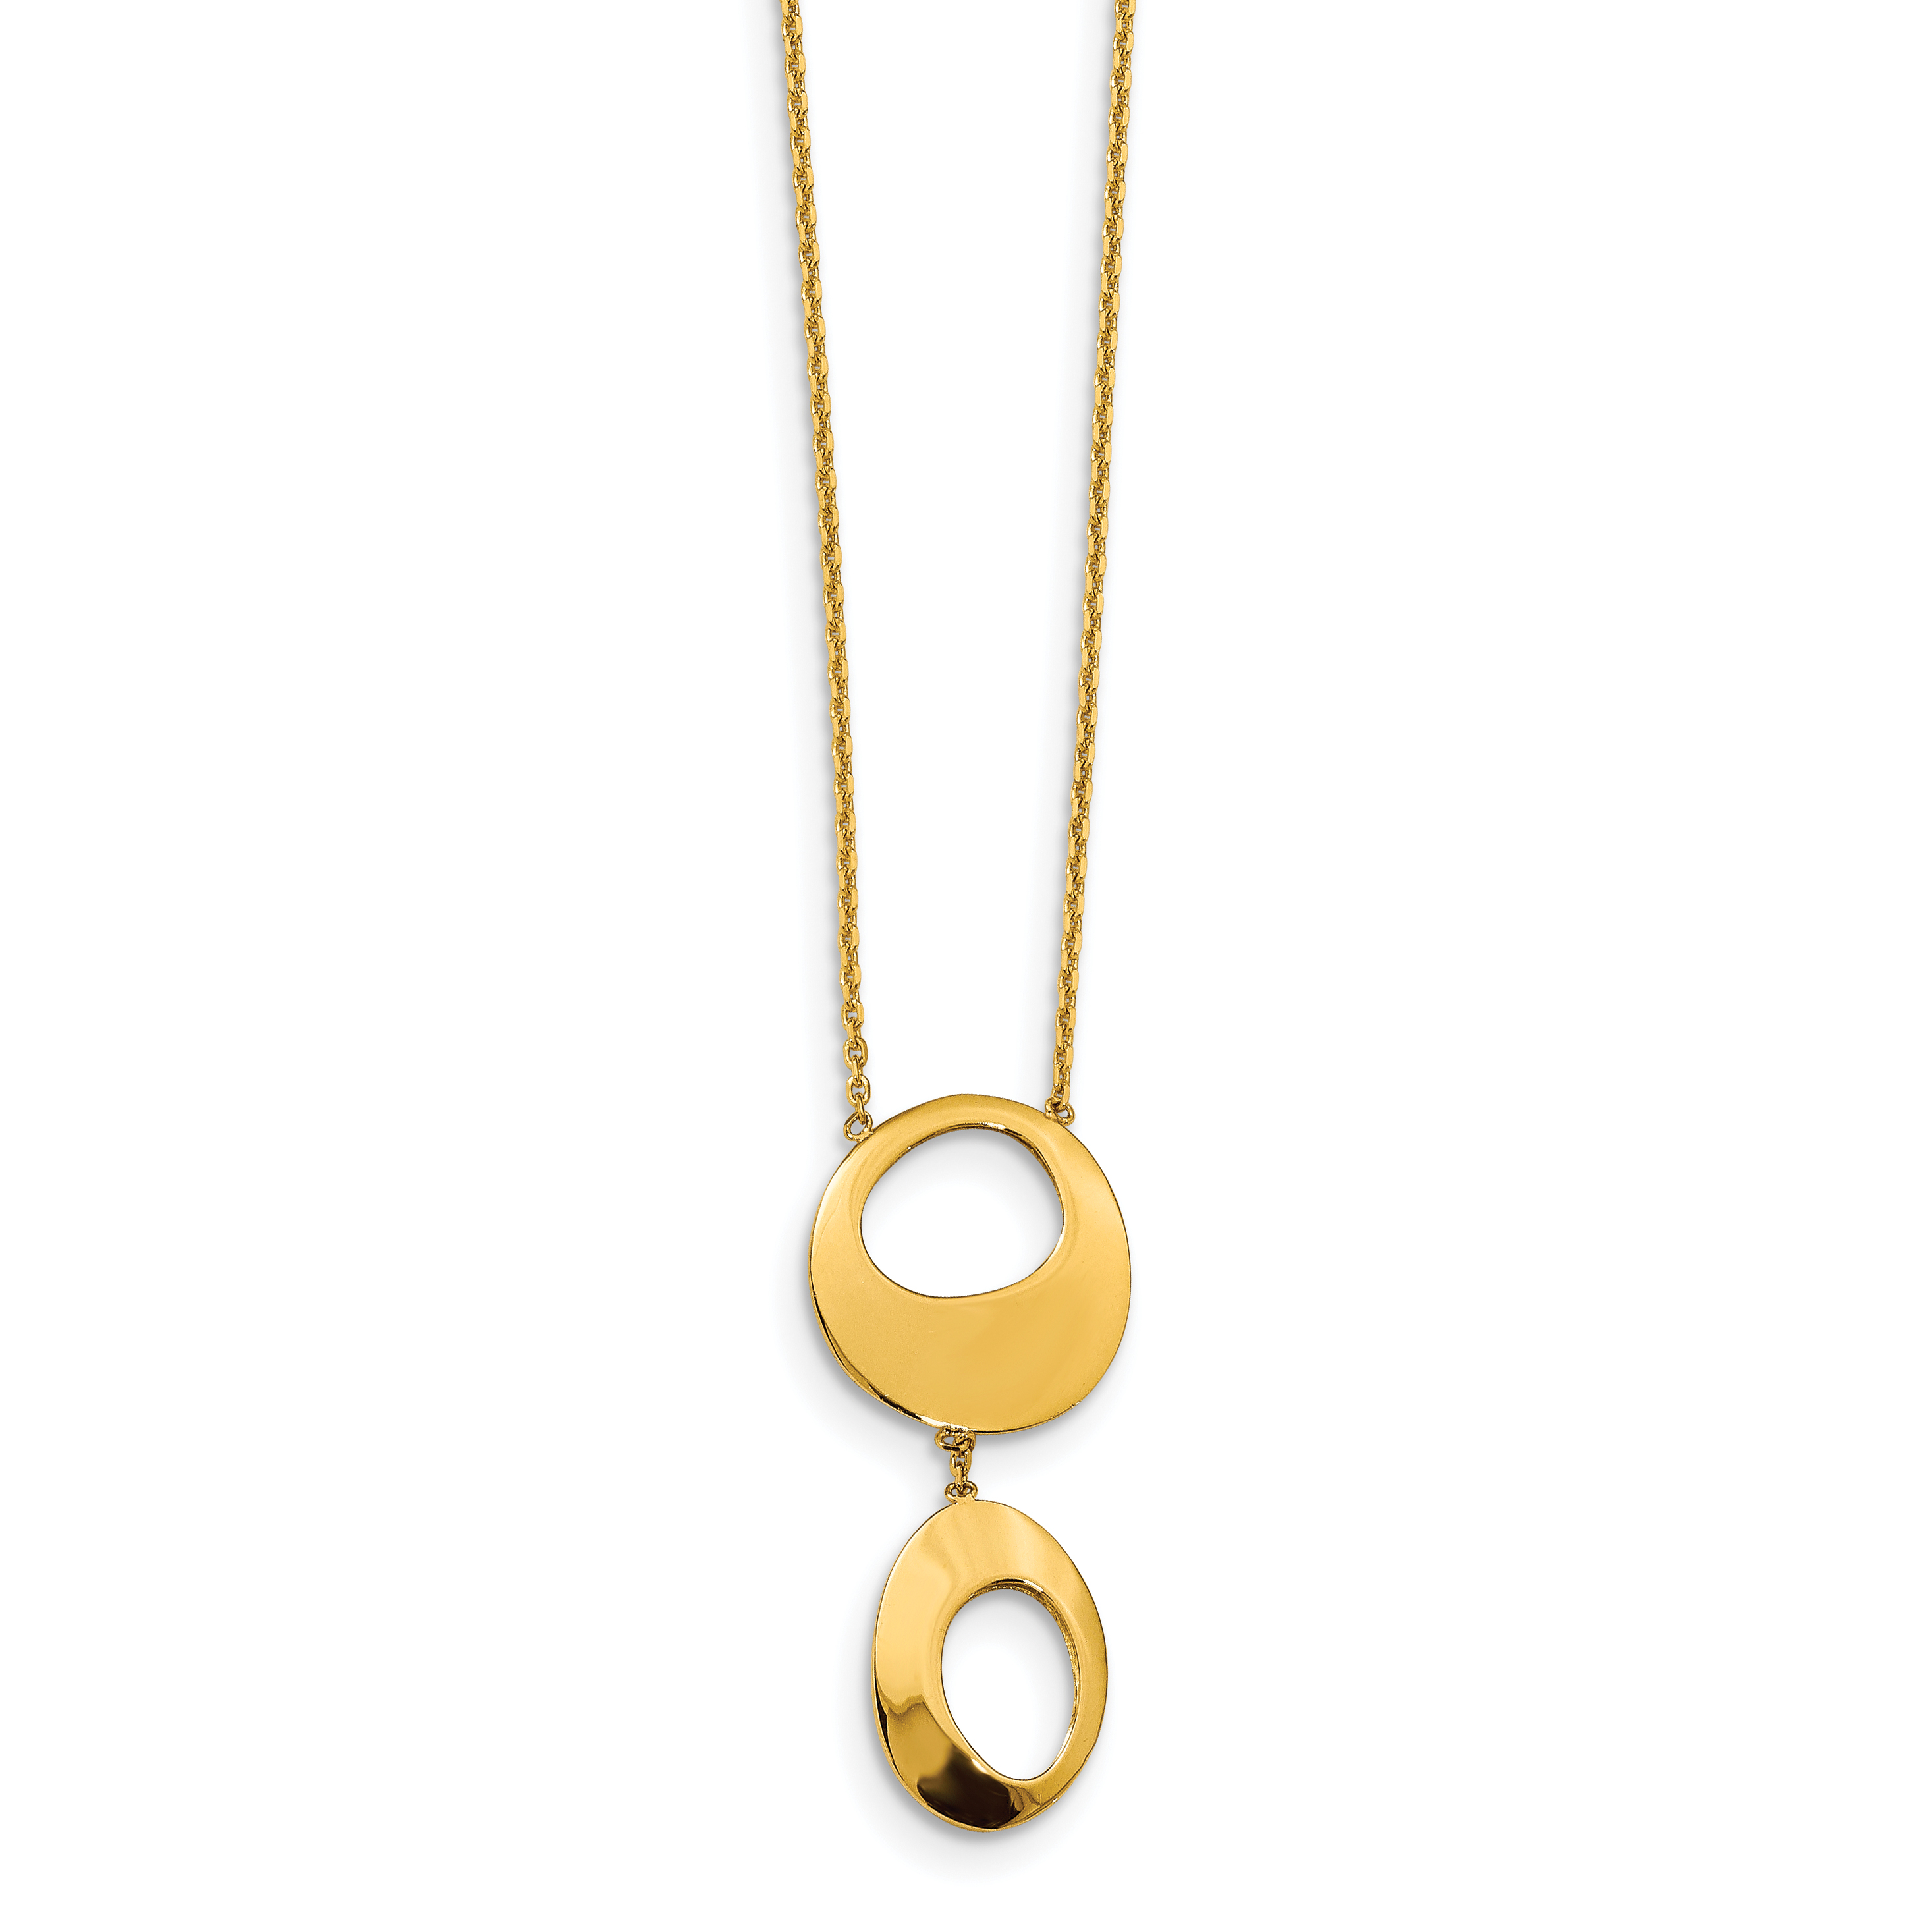 Leslie's 14K Polished Hollow Circles w/2 in ext Necklace